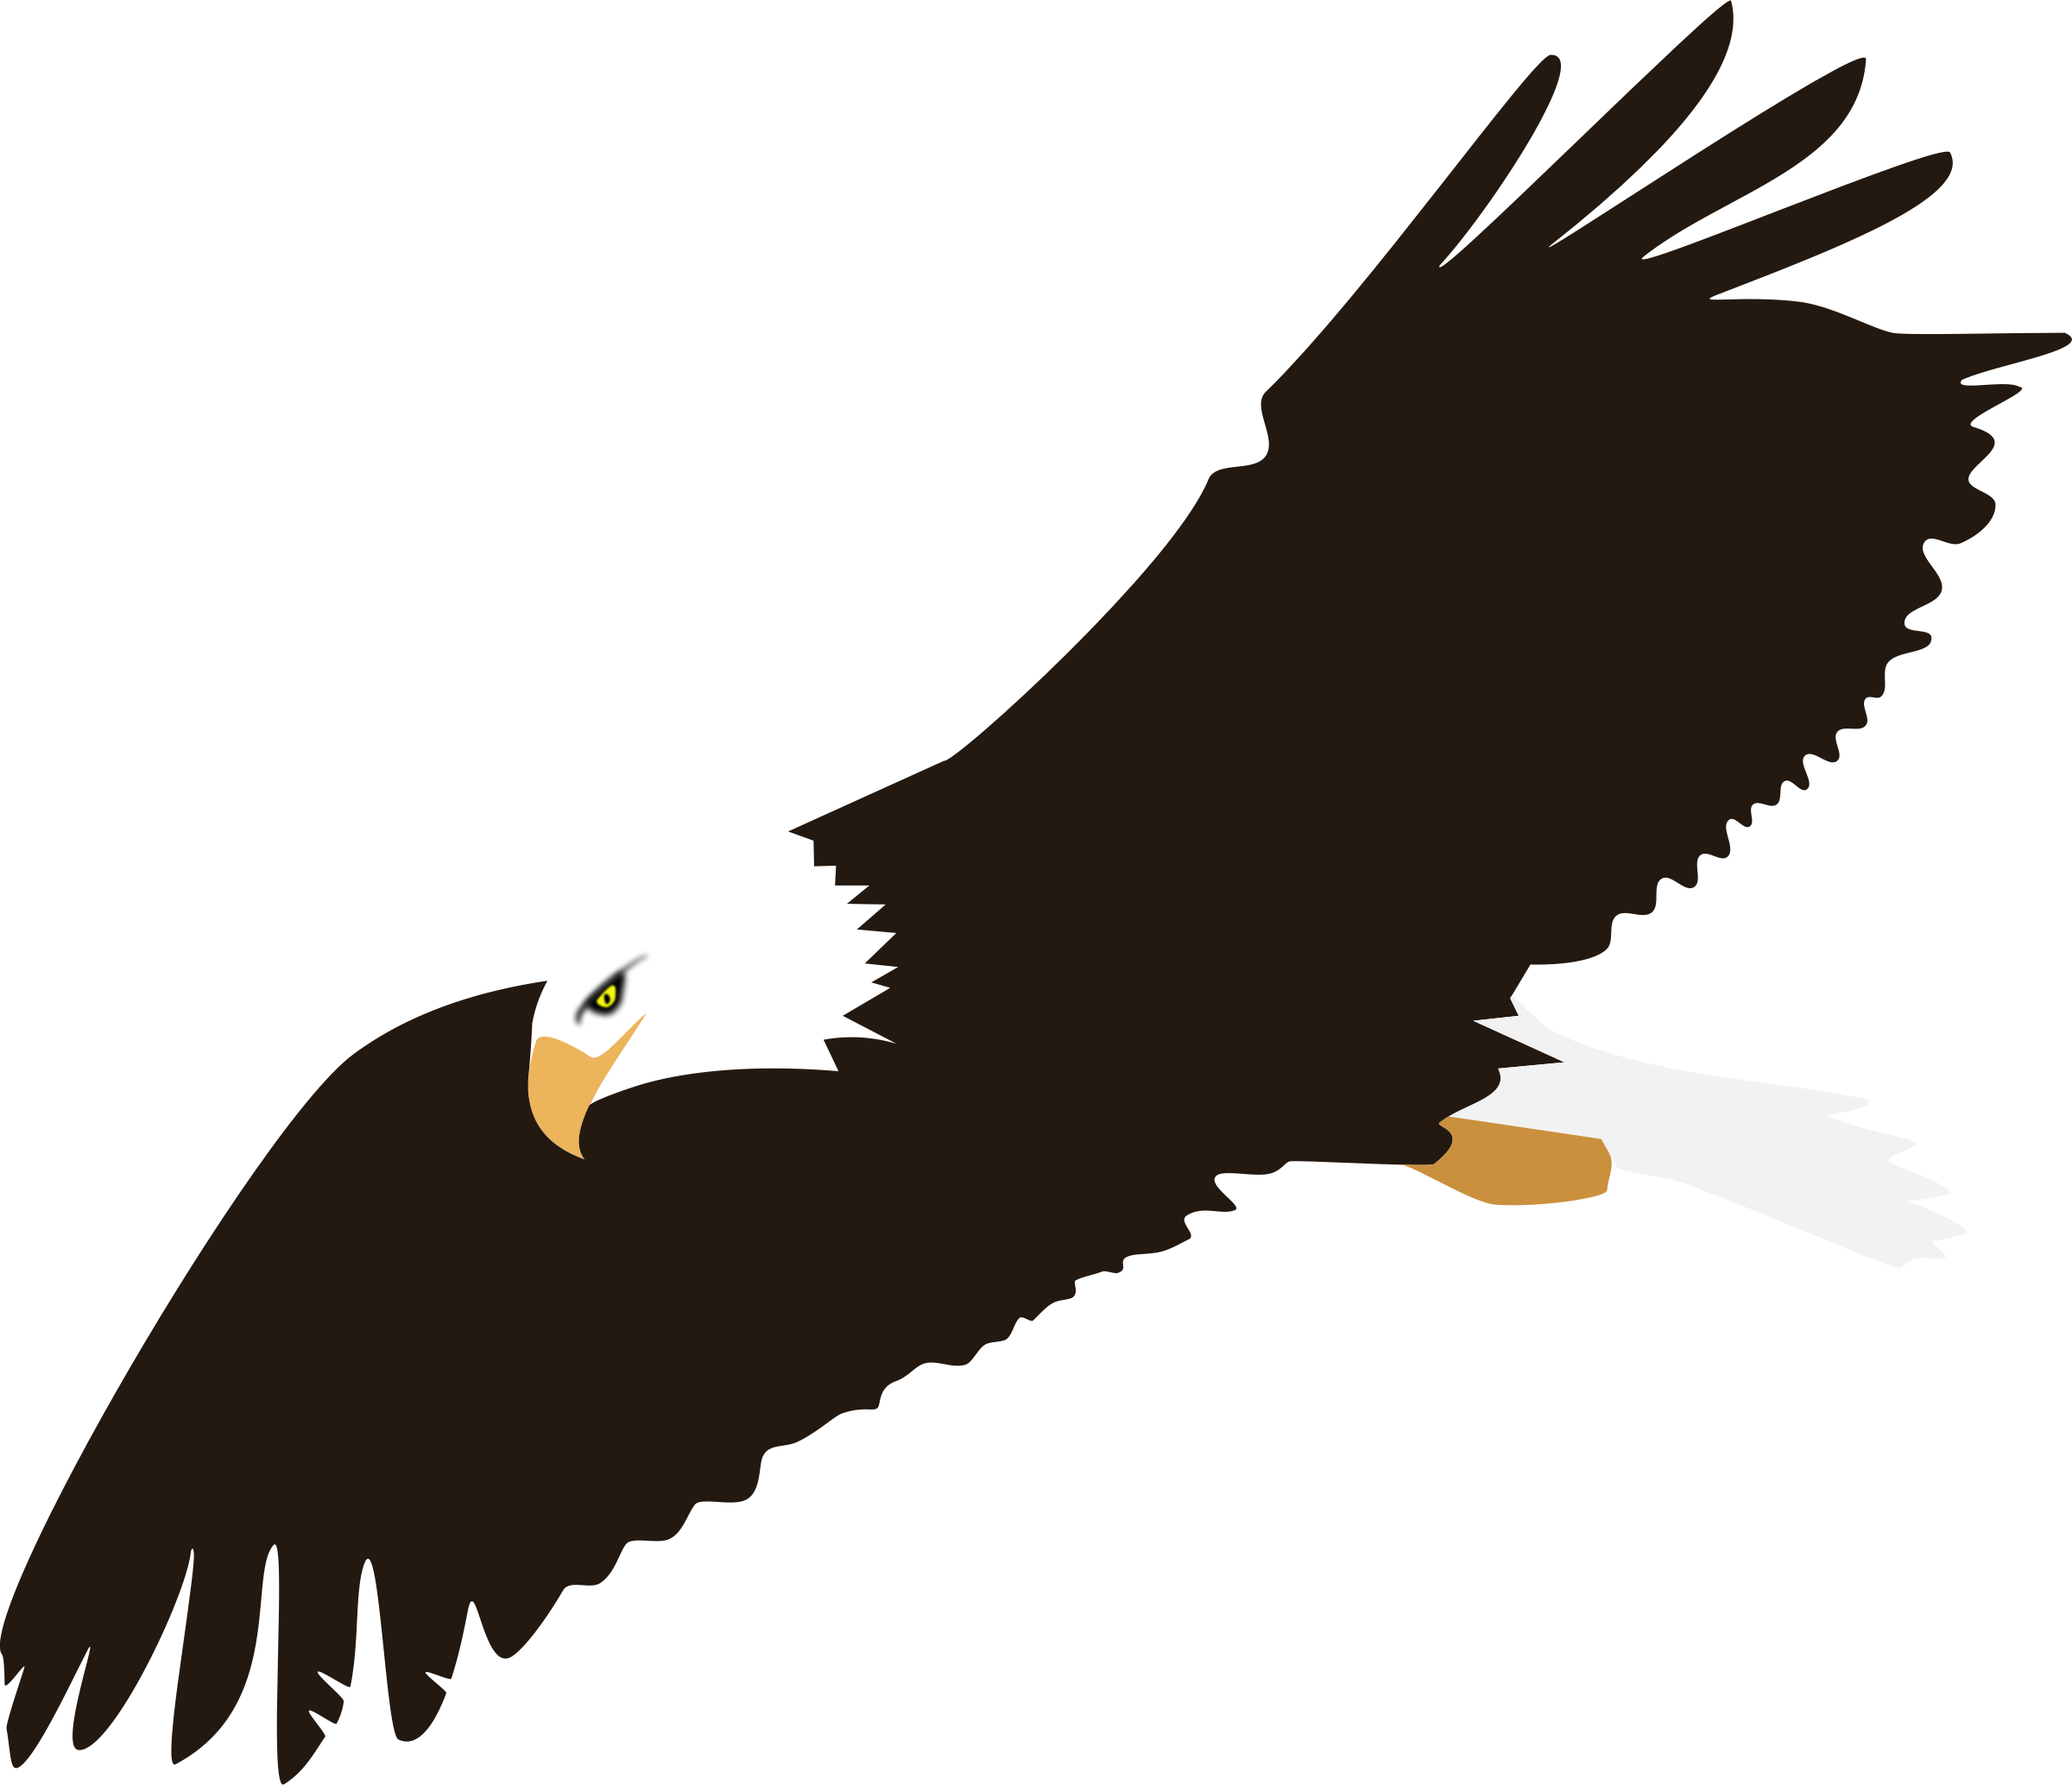 Free cliparts background download. Eagle with football clipart